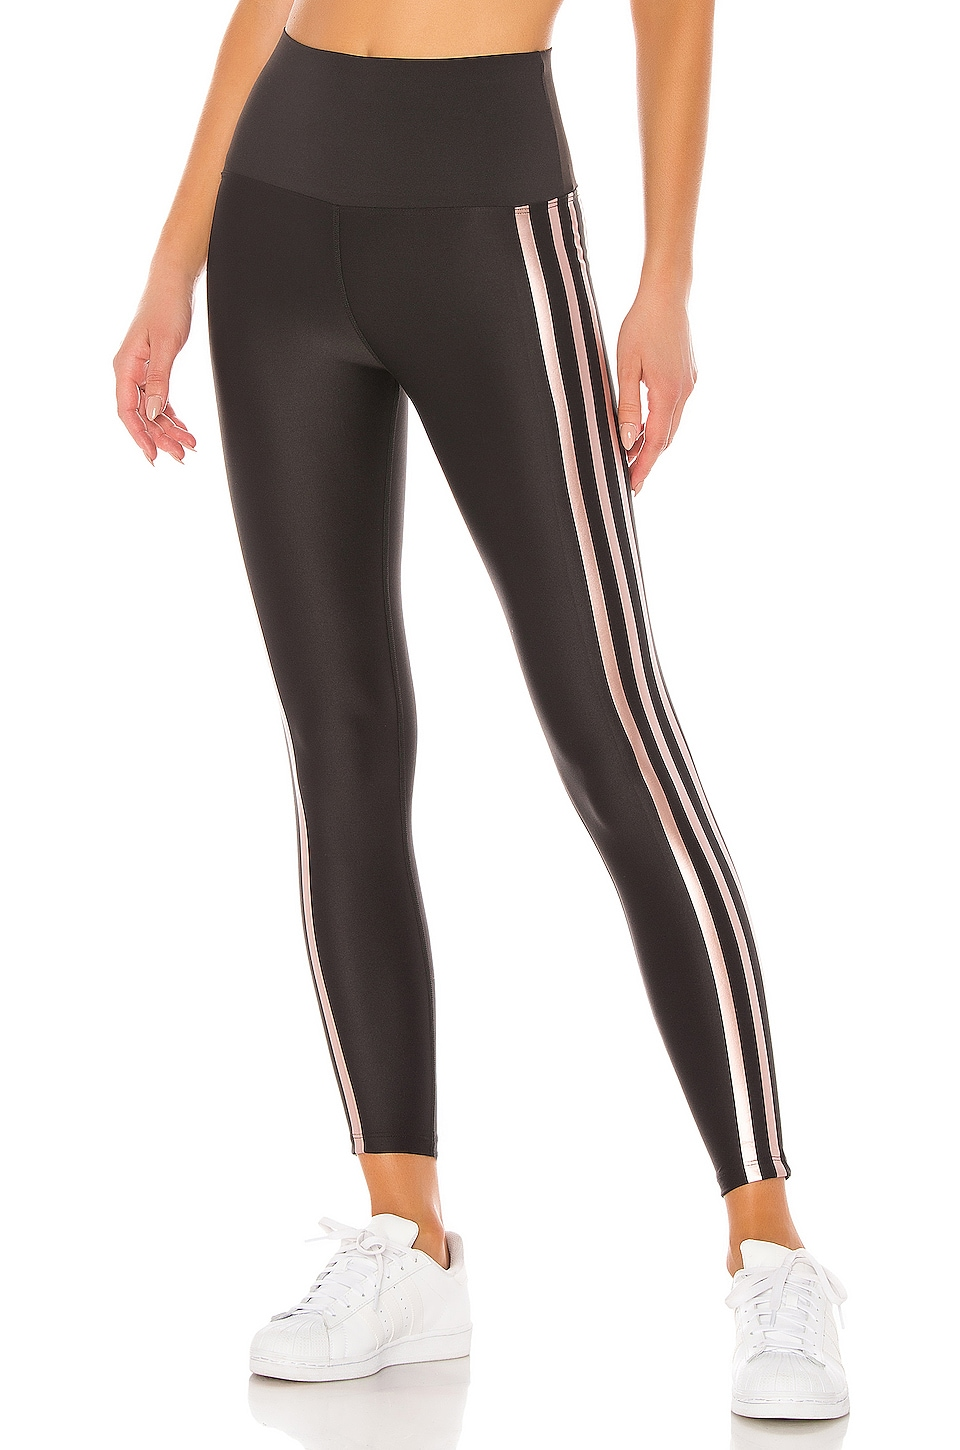 BEACH RIOT Jade Legging in Rose Gold